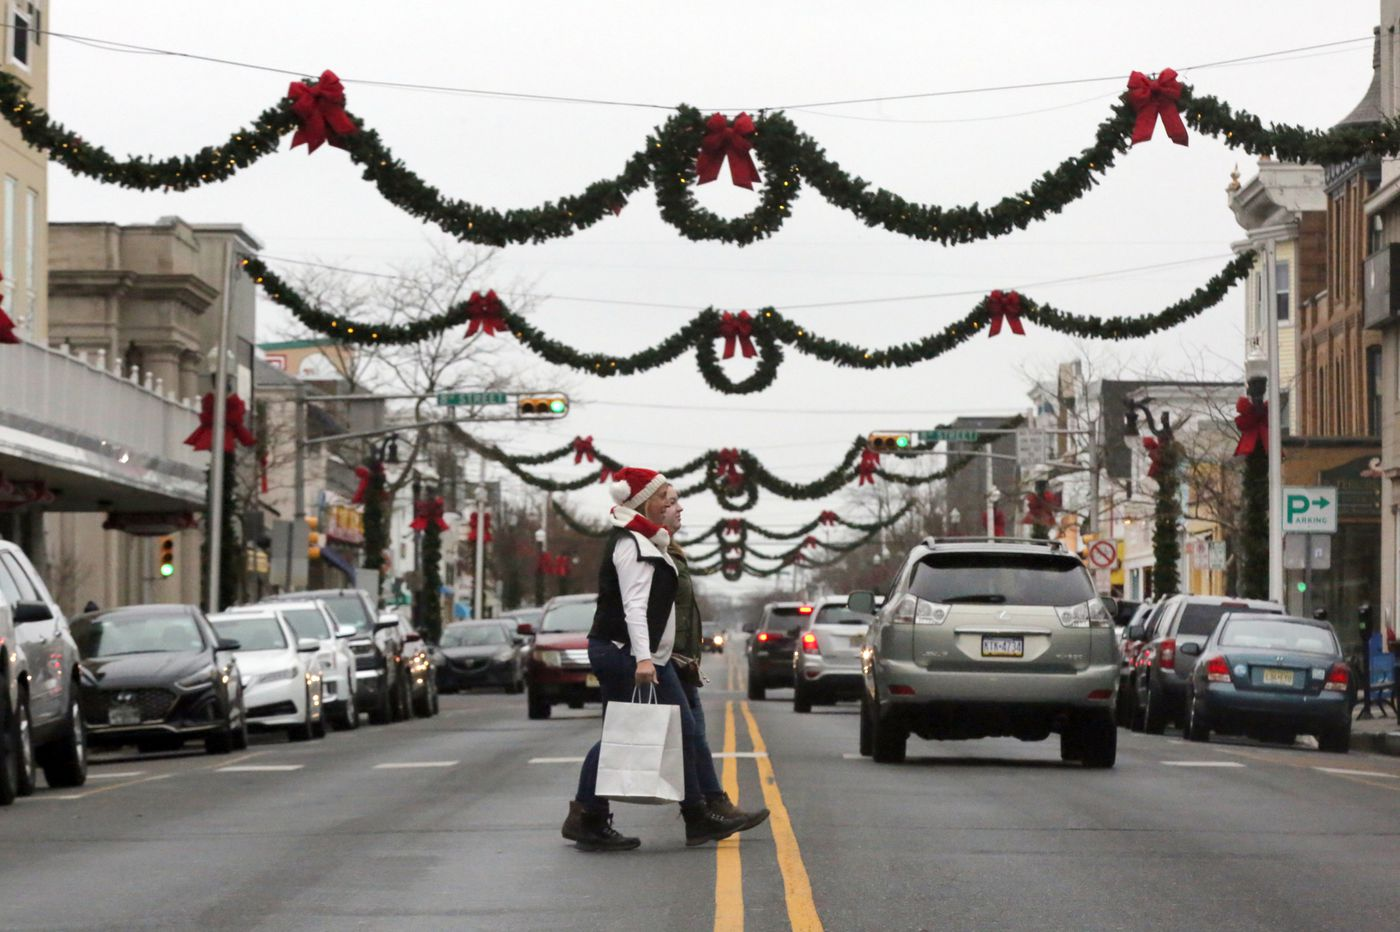 Jersey Shore for the holidays? More families are finding a winter escape there.